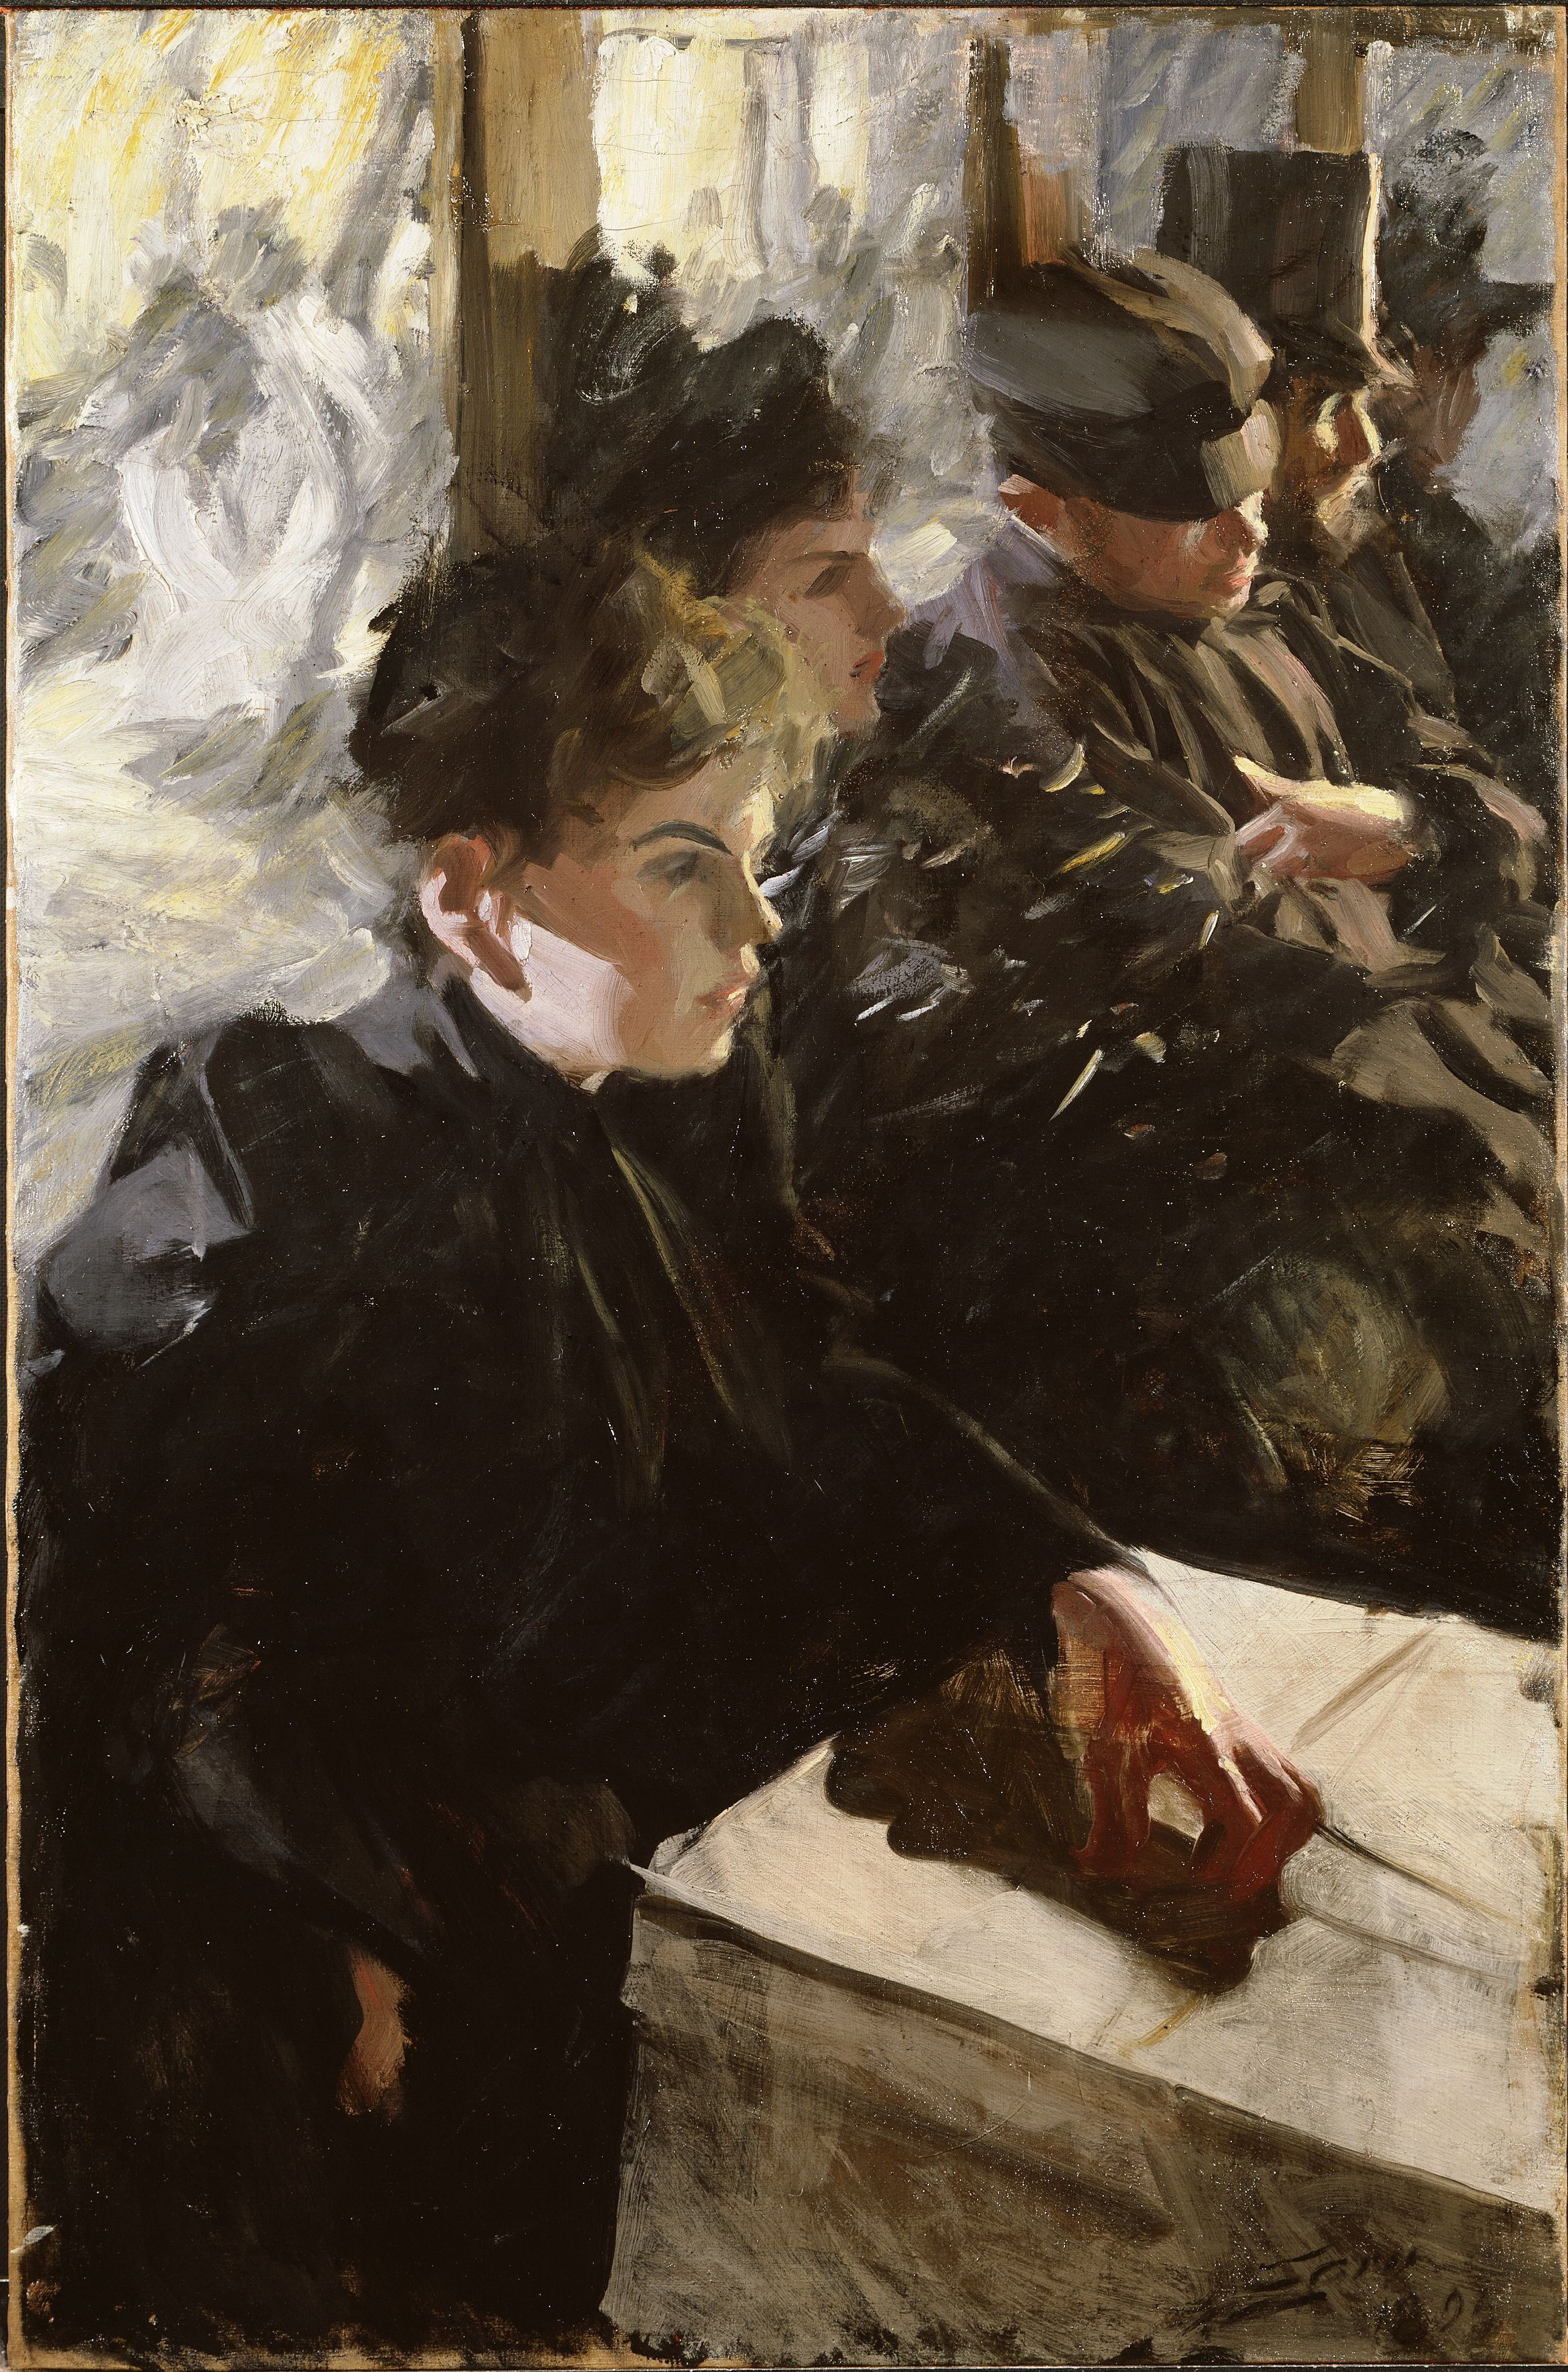 [inspi] Expositions / Musées / Salons... - Page 4 10._anders_zorn_omnibus_i